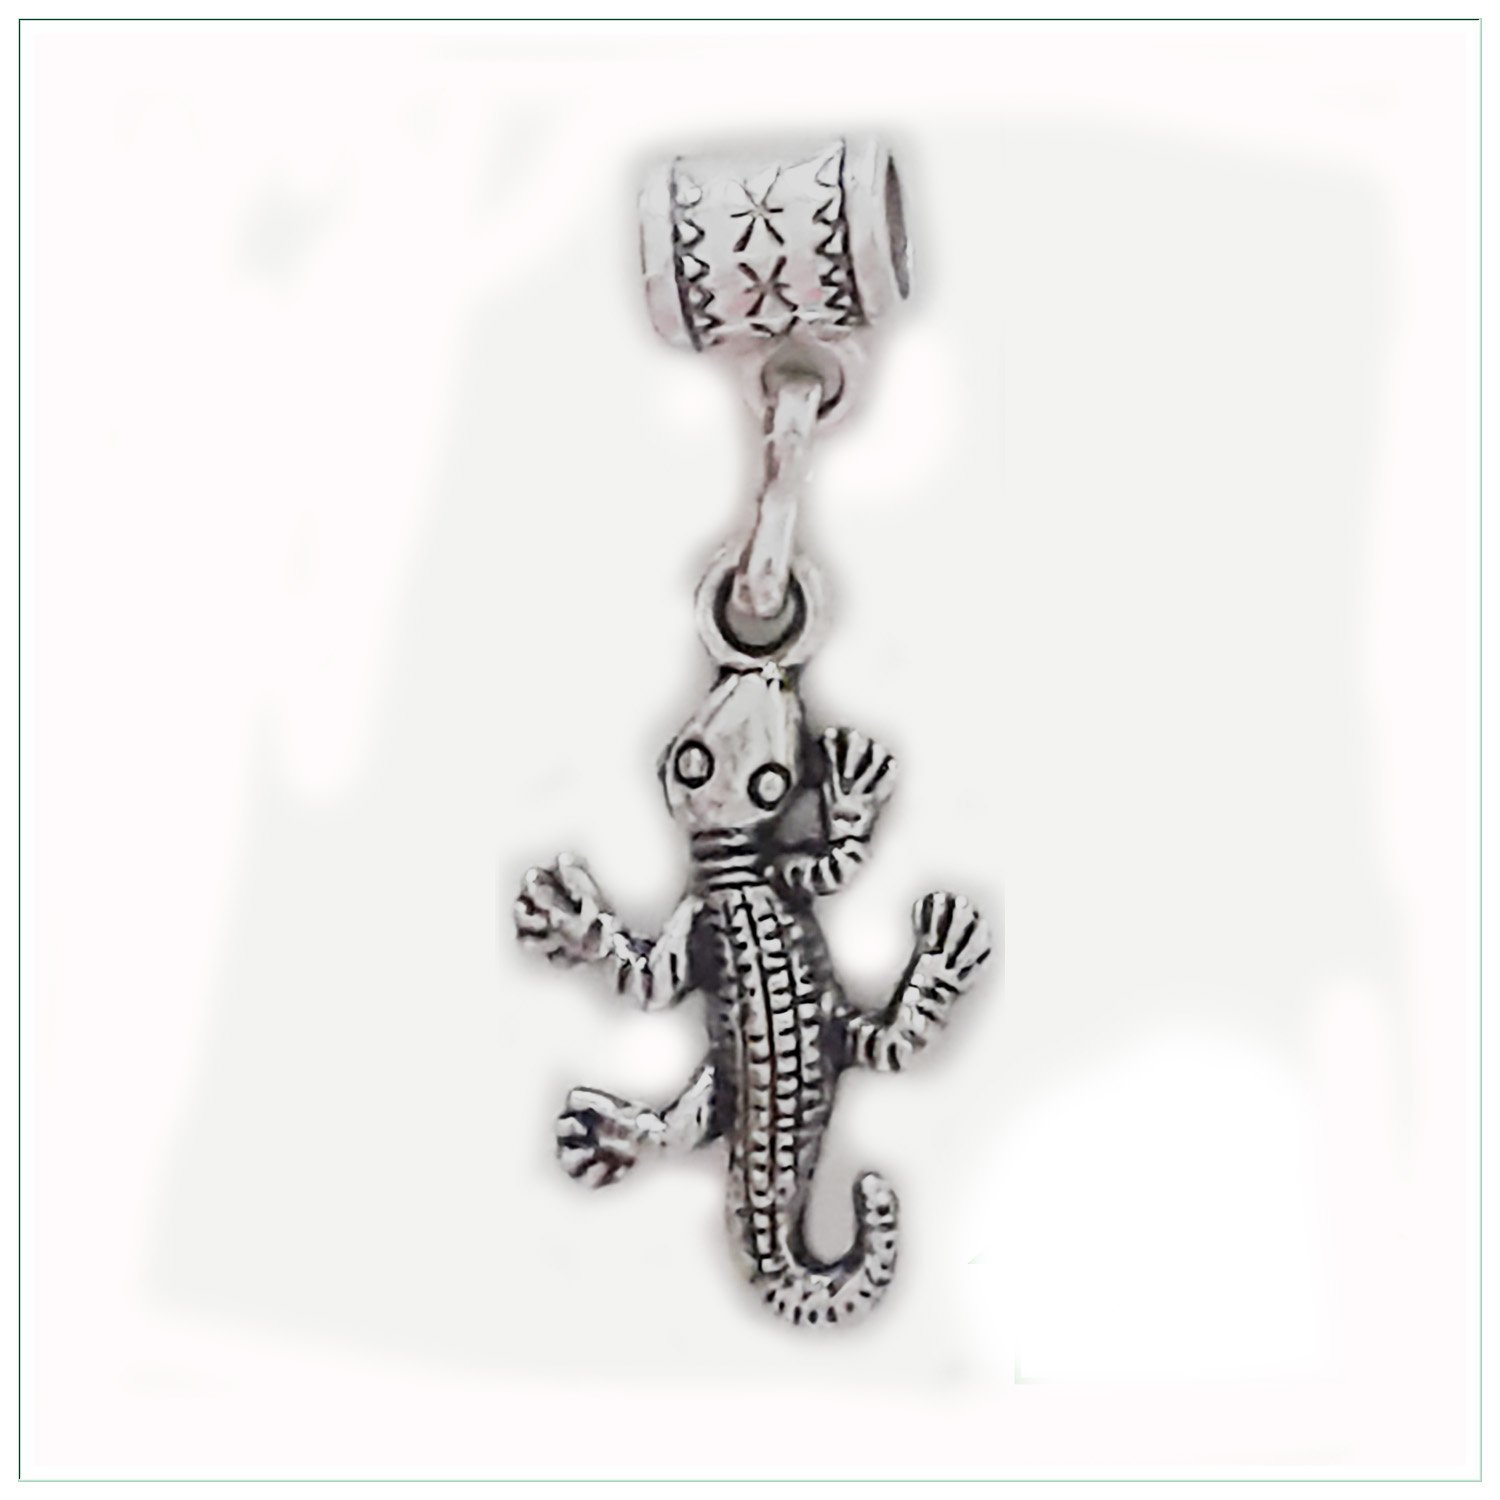 Gecko charm in antique silver by Mossy Cabin for modern large hole snake chain charm bracelet, or add to a neck chain, pendant necklace or key chain